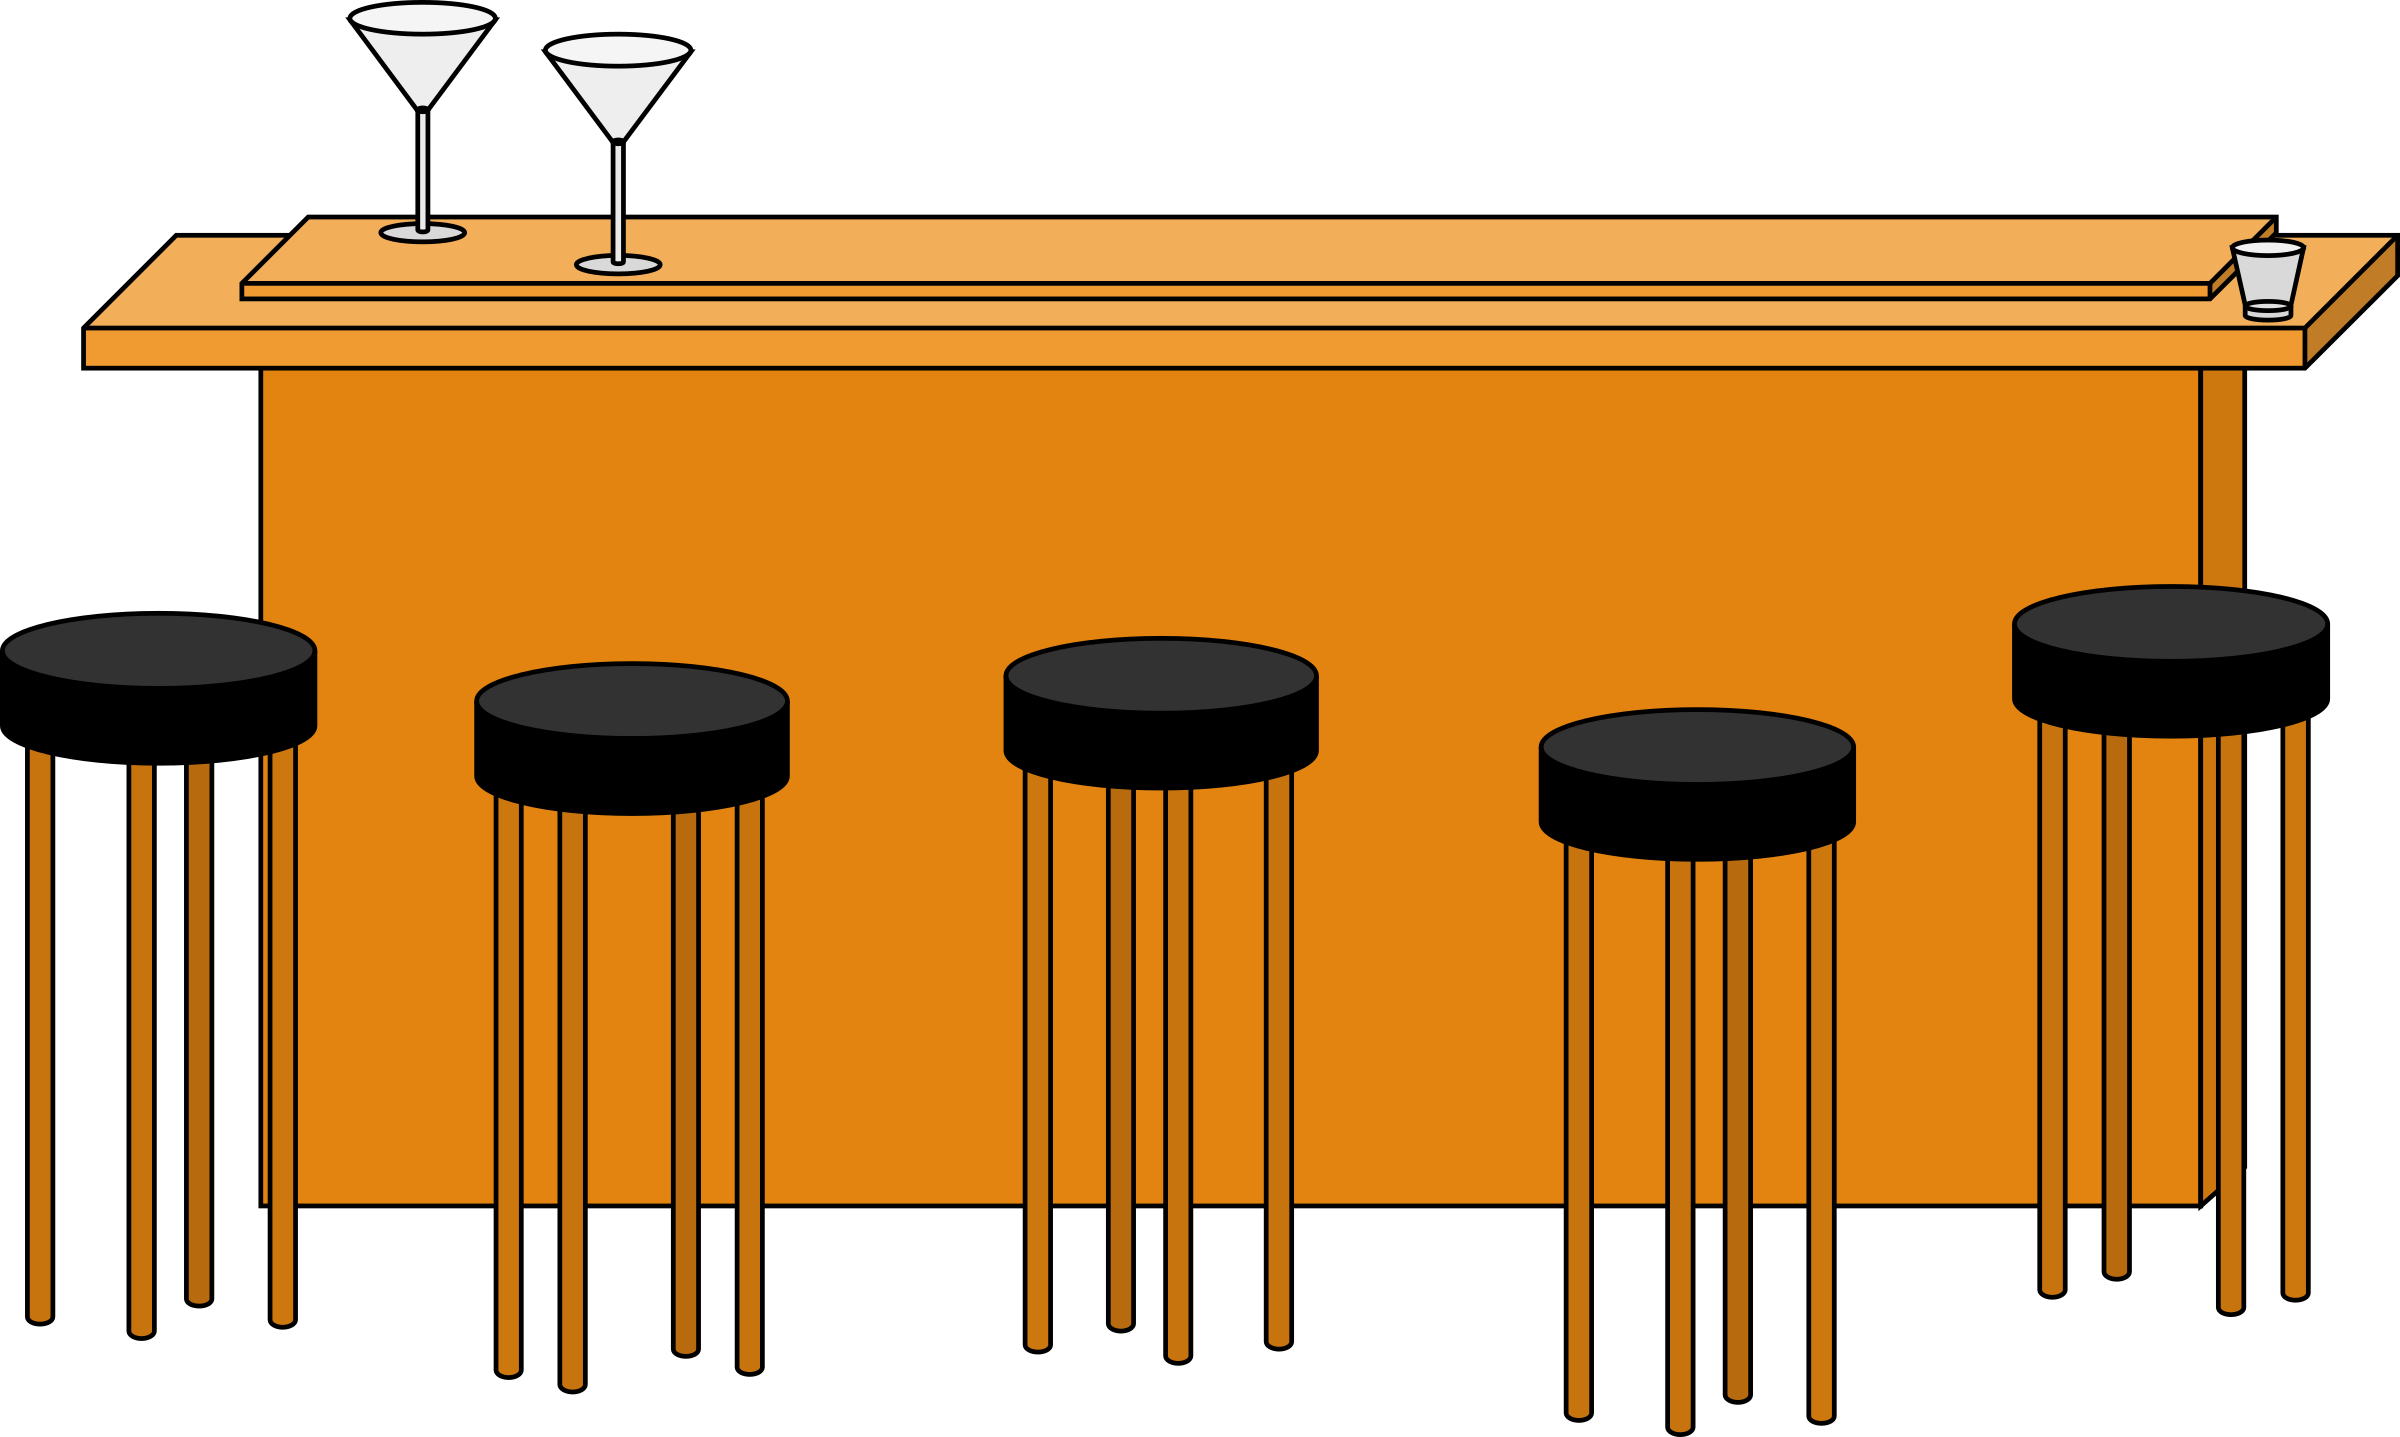 bar with stools by barnheartowl